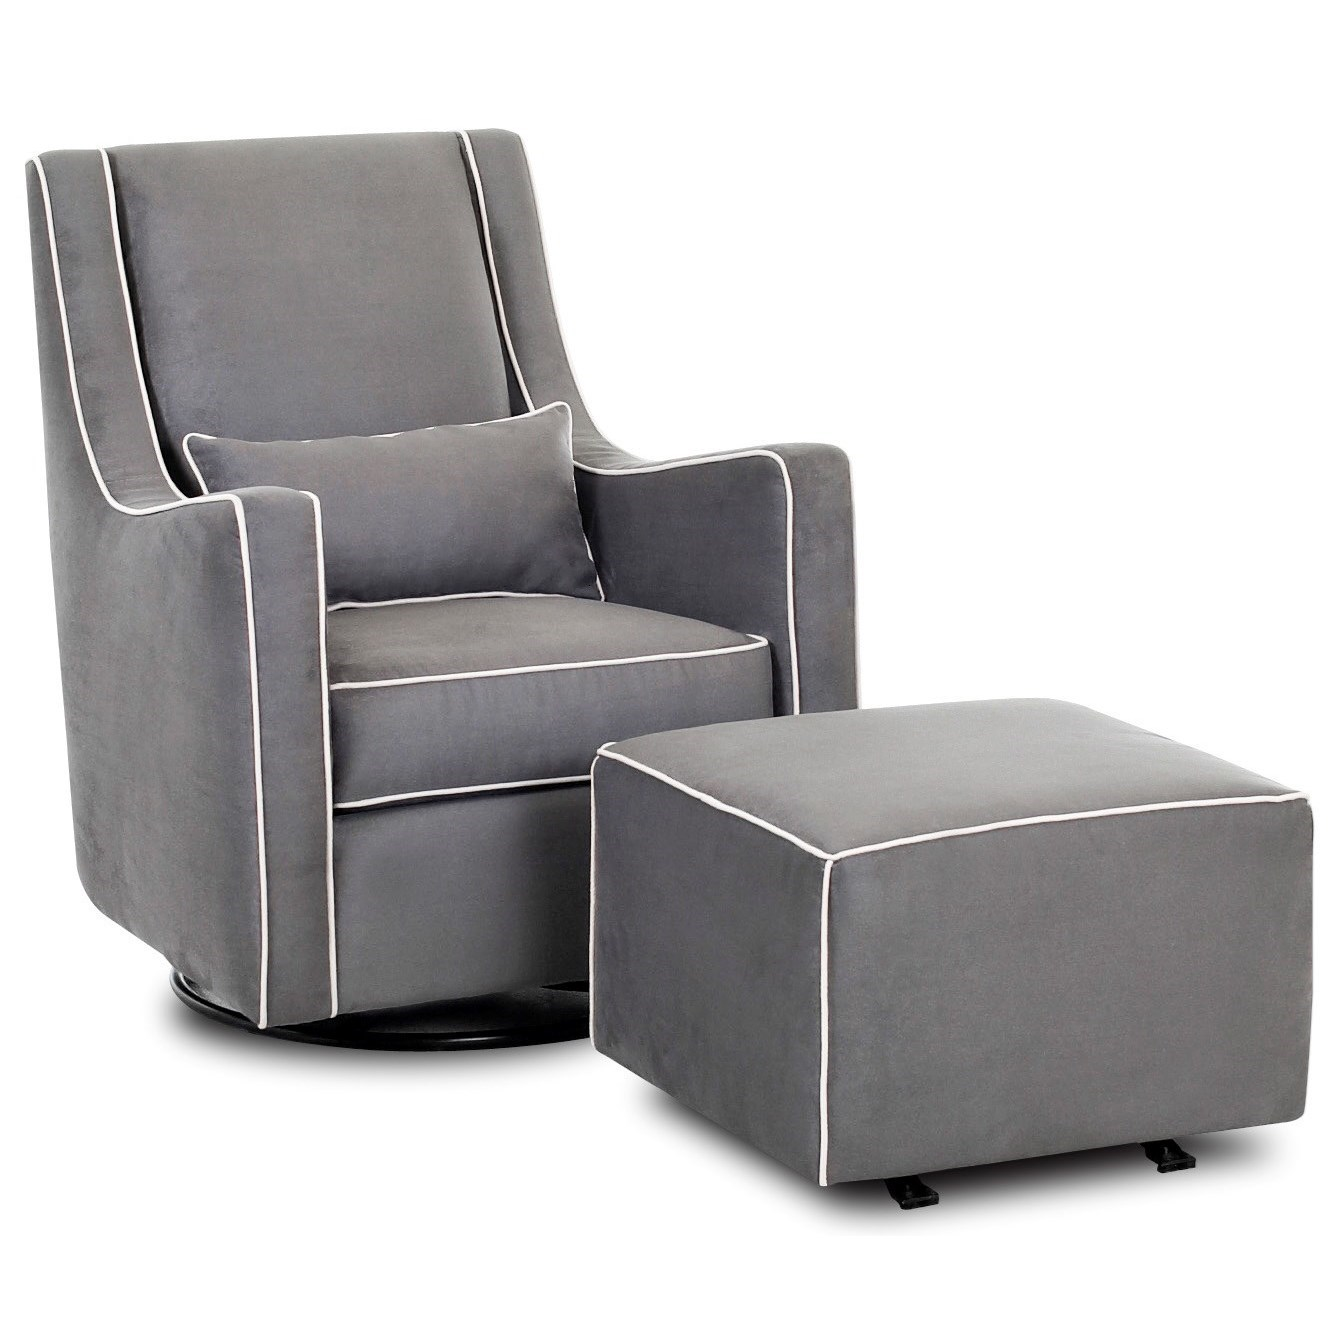 Lacey Swivel Gliding Chair and Ottoman